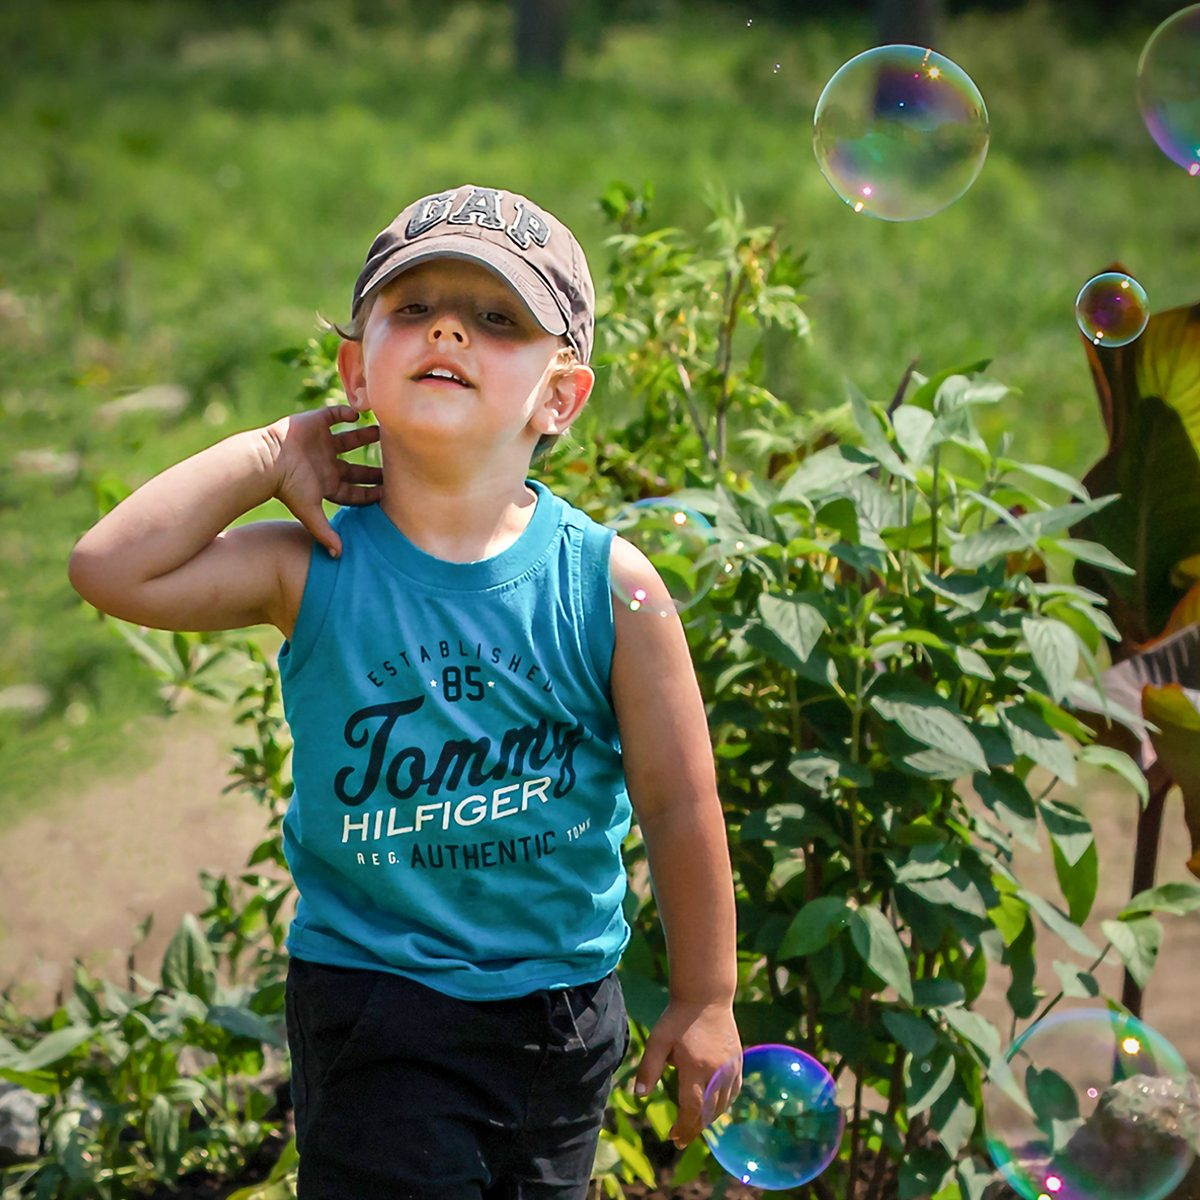 In the backyard photography - boy chasing bubbles